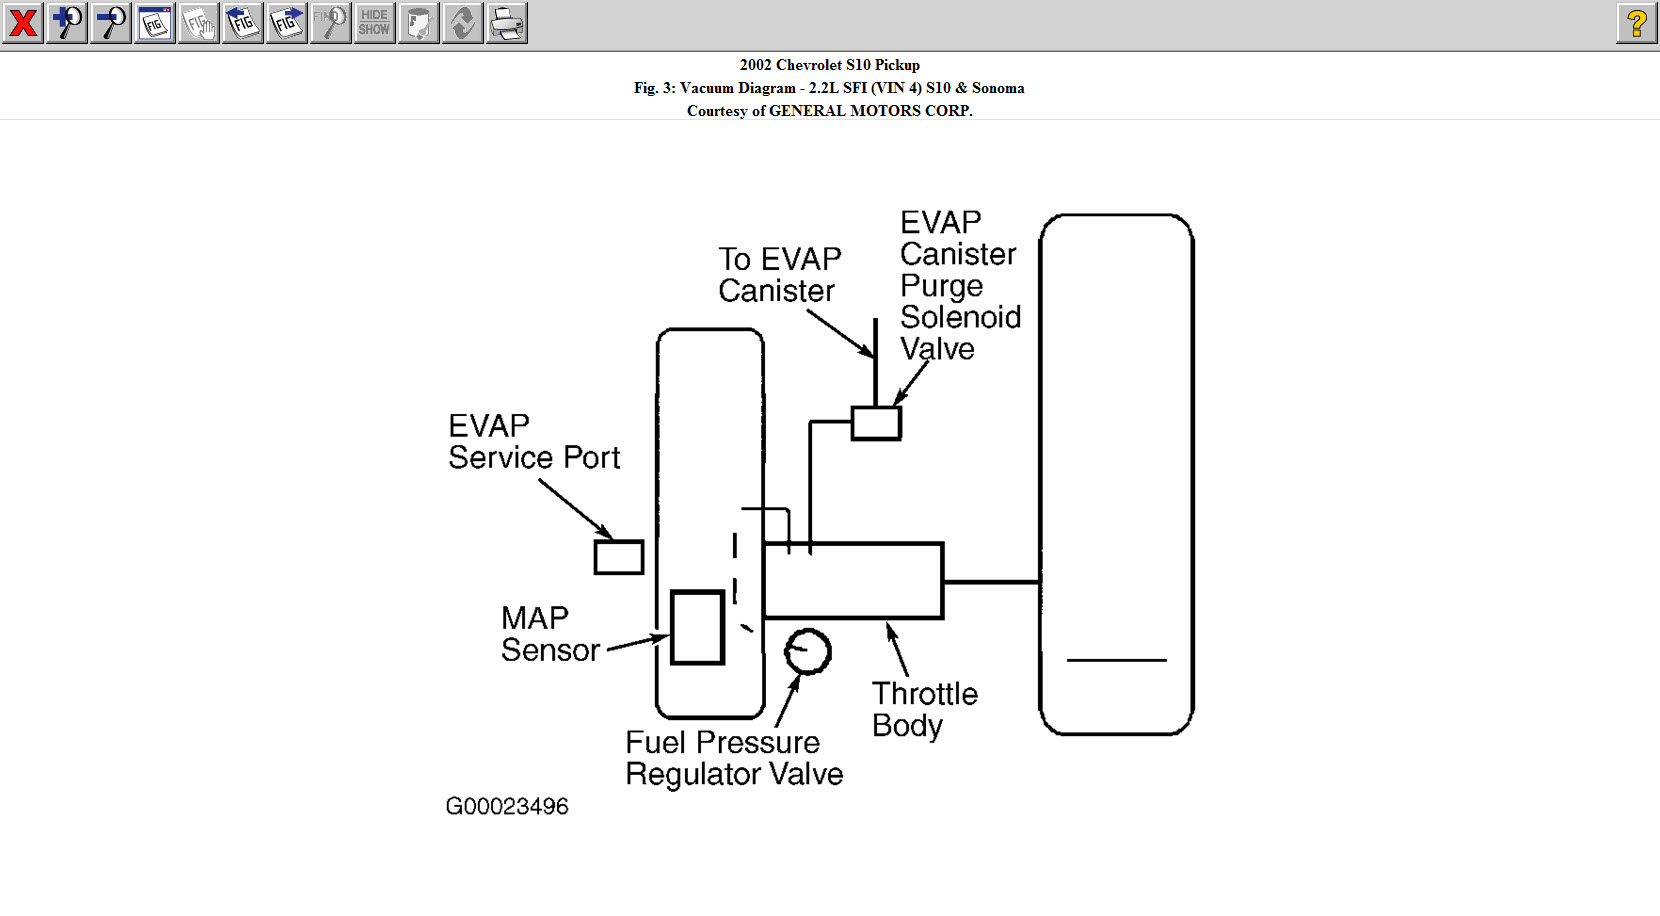 Vacuum System Diagram  Vacuum System Diagram For 2002